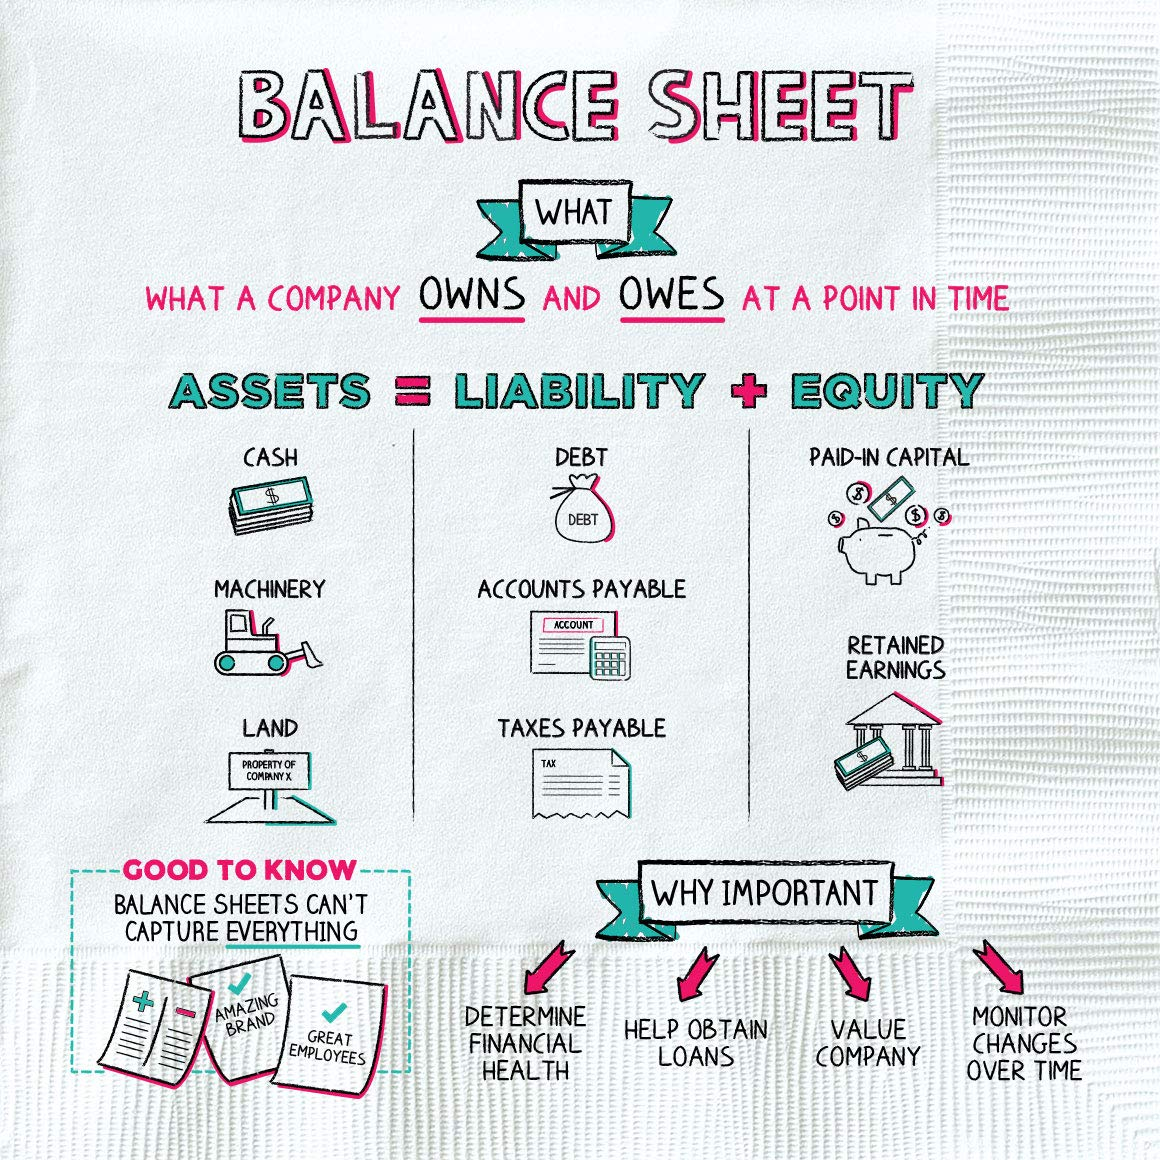 napkin finance - balance sheet